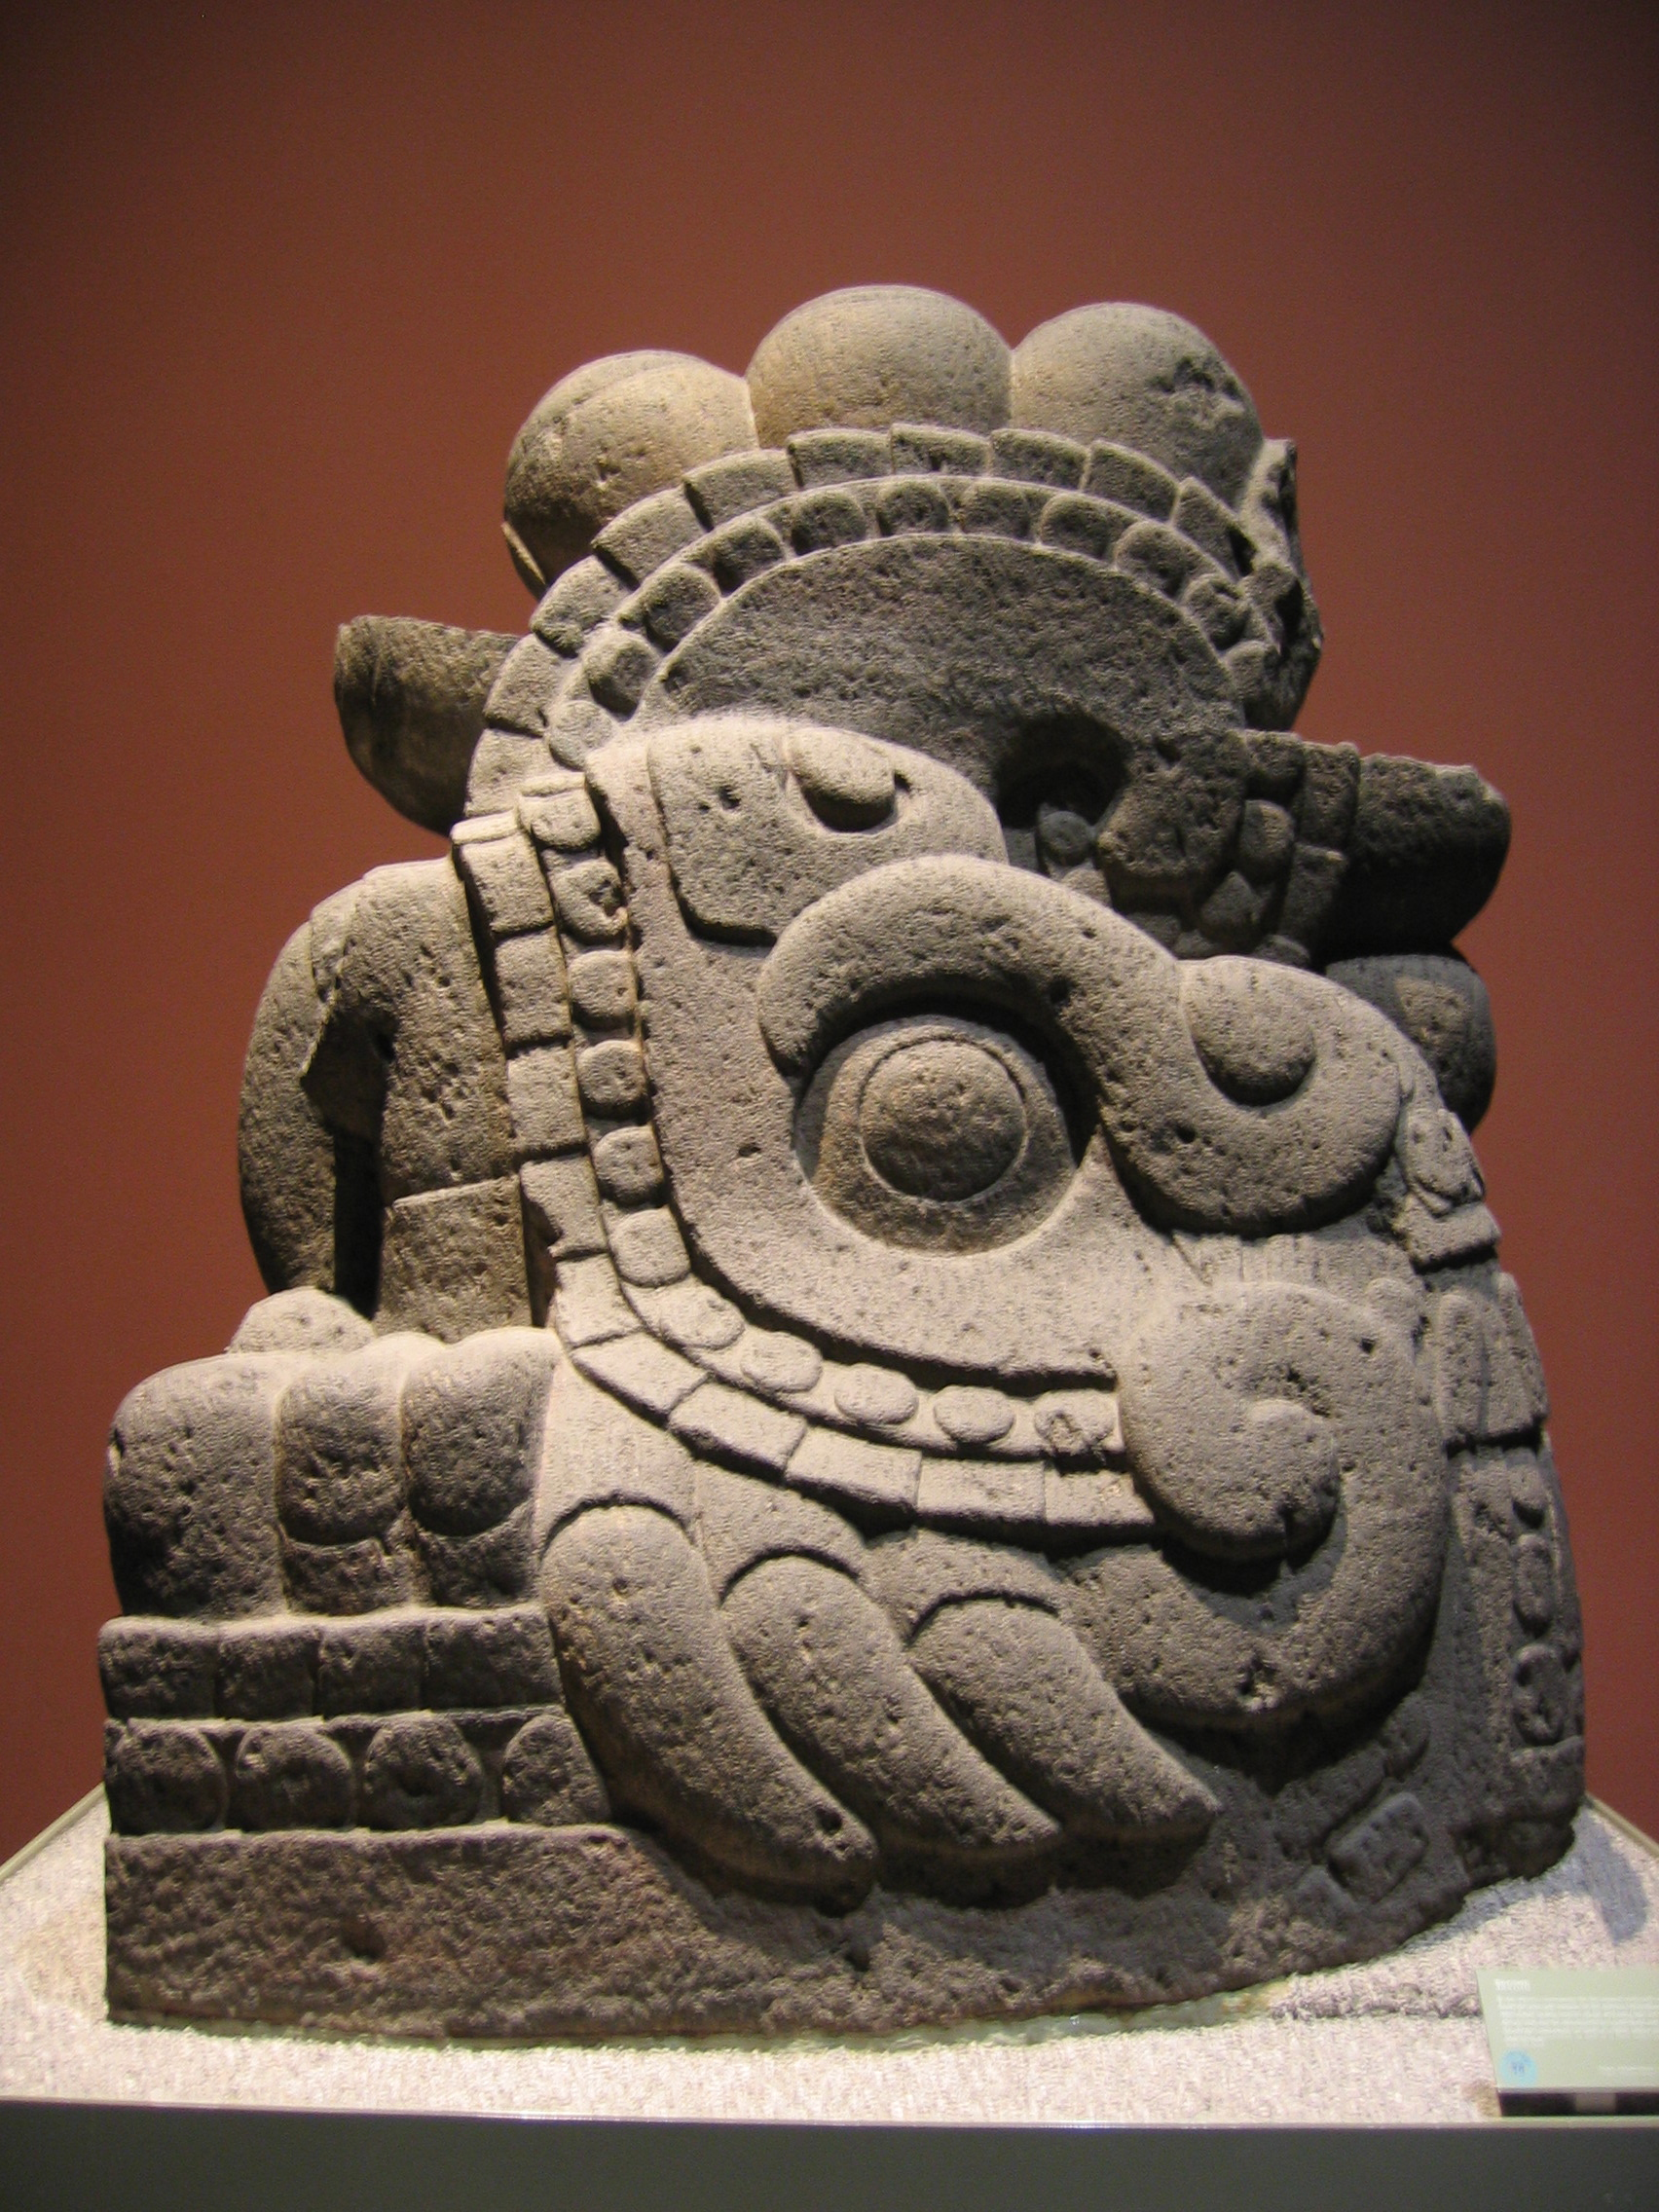 aztec sculptures | aztec | Pinterest | Stone Carving ...